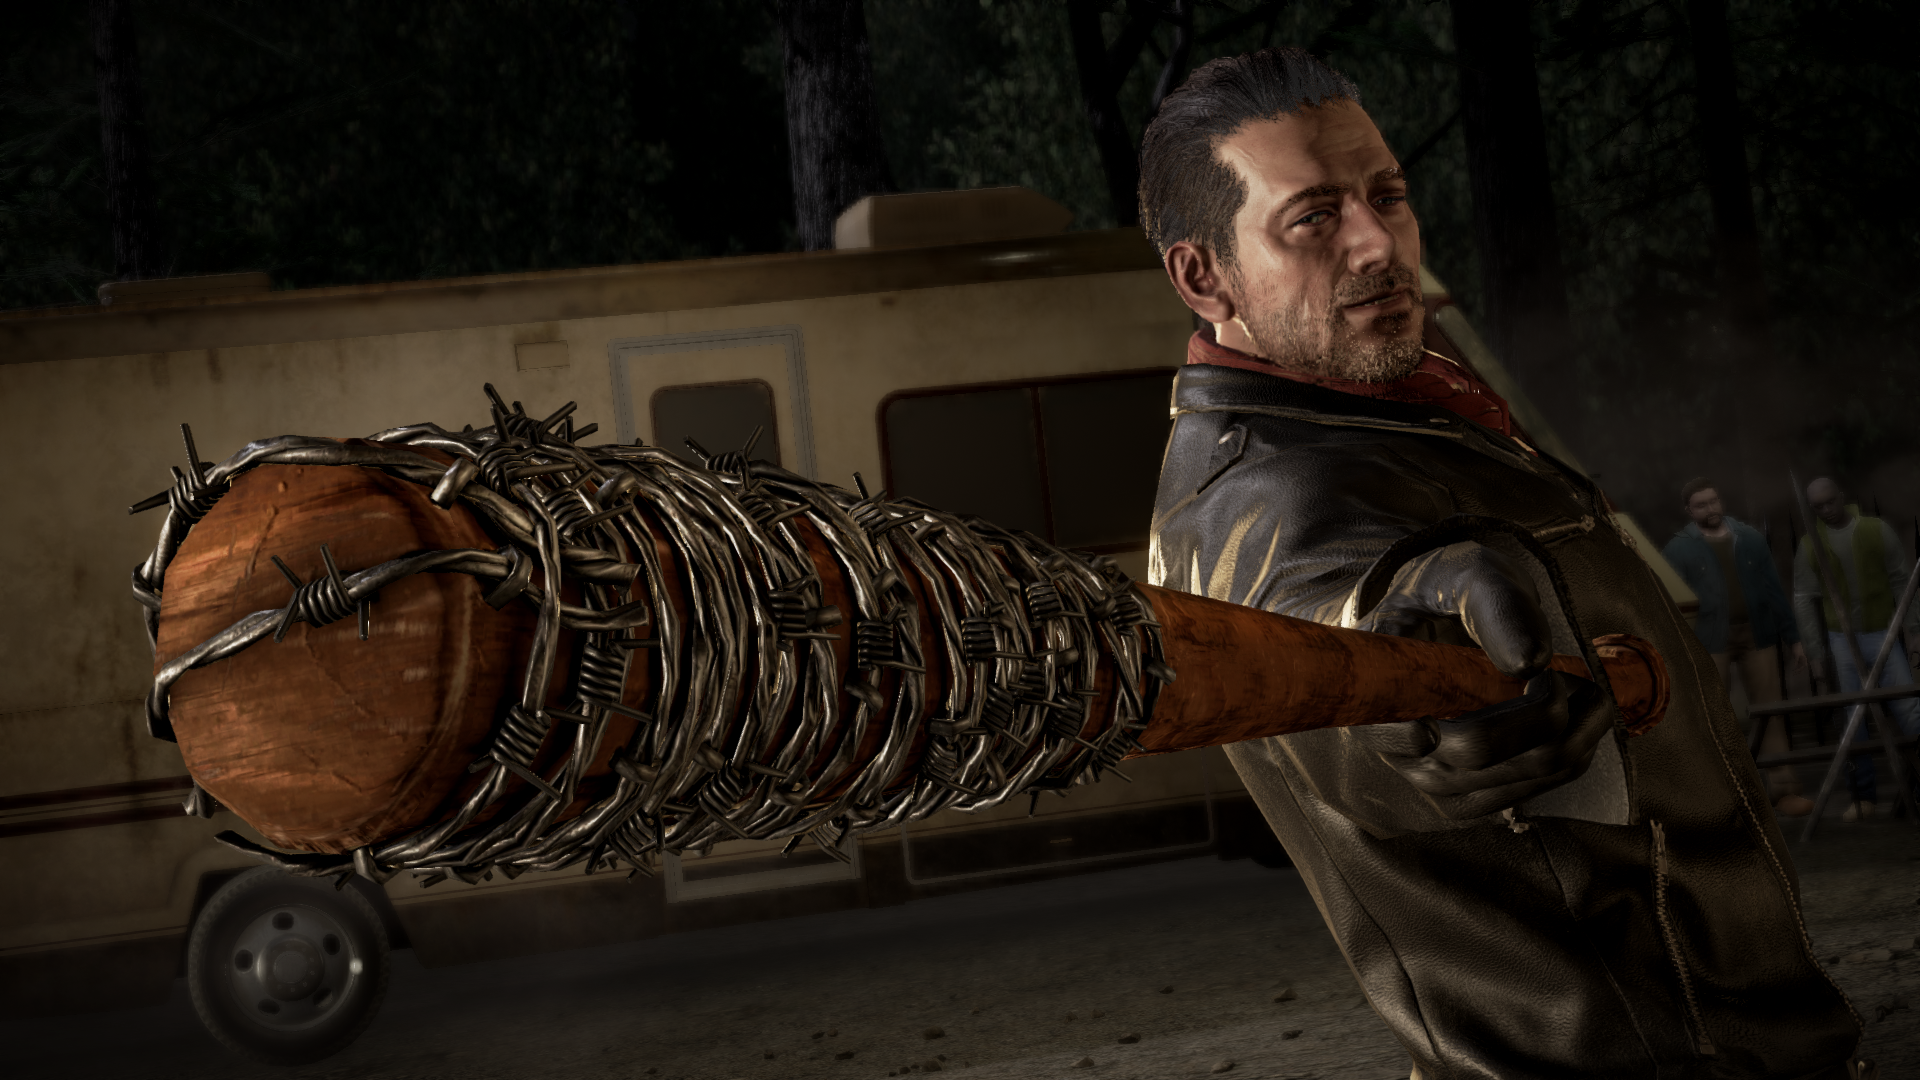 Here S When The Walking Dead S Negan Is Coming To Tekken 7 Tekken 7 The Walking Dead Negan